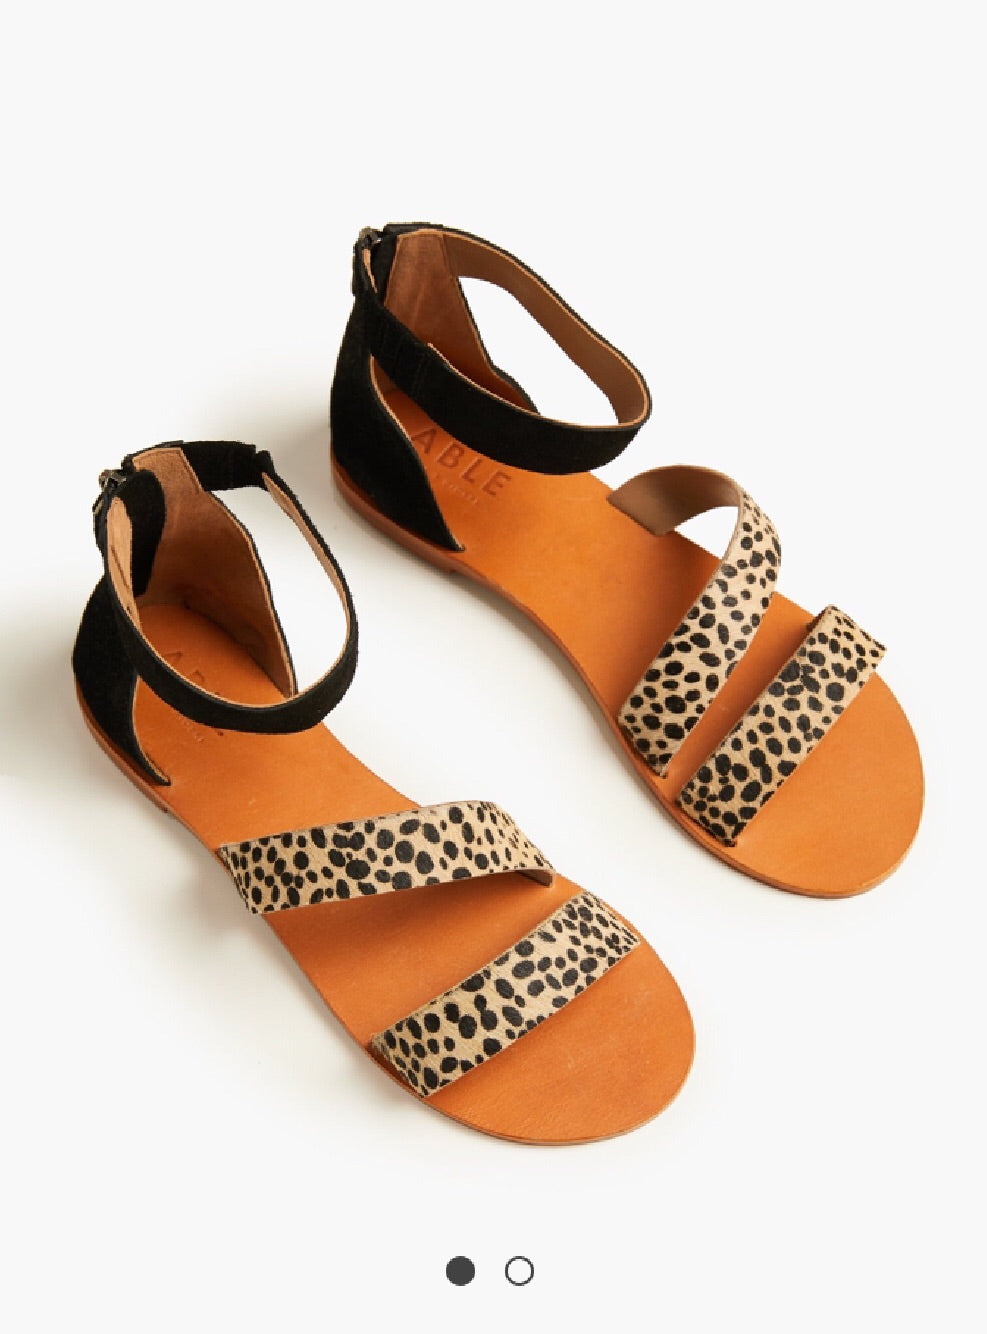 Cheetah Elisa sandal | Chosen Women's Apparel